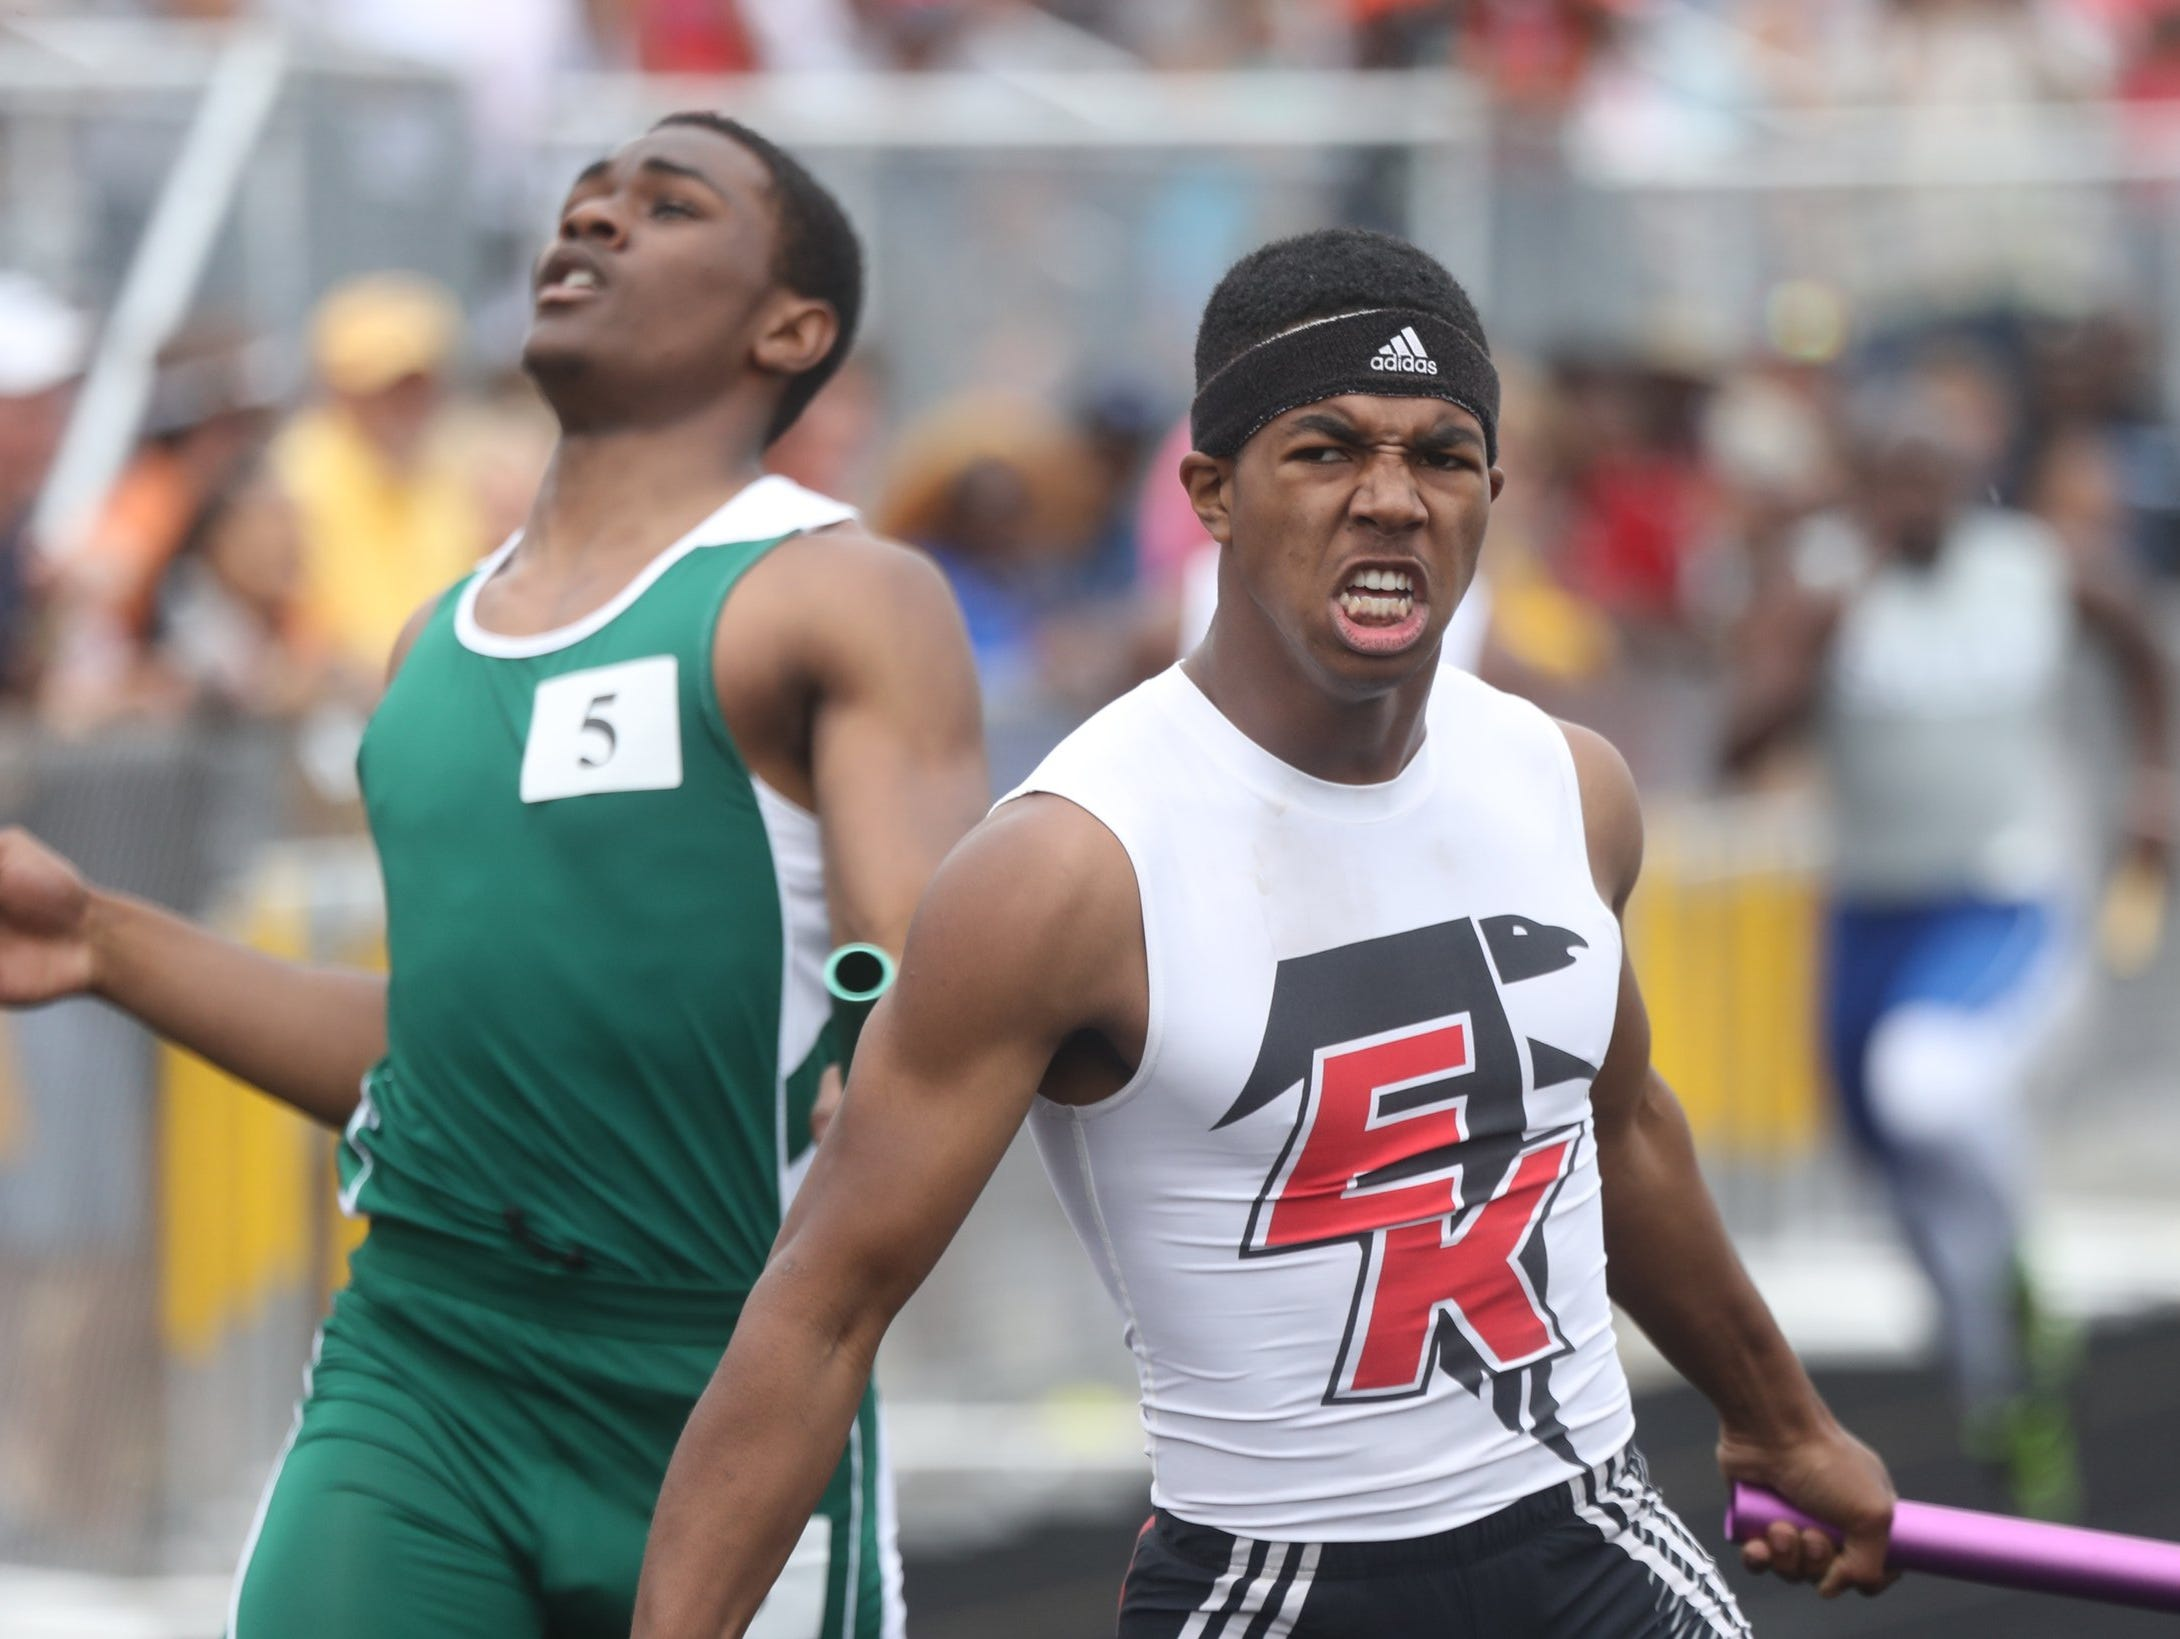 Shane Harris from East Kentwood high school finishes the 4x200 relay in front of Donovan Johnson from Cass Tech at the MHSAA Divison One State Track and Field championships on Saturday, June 4, 2016 at Hudsonville Eagles Stadium in Hudsonville MI. Kirthmon F. Dozier/Detroit Free Press